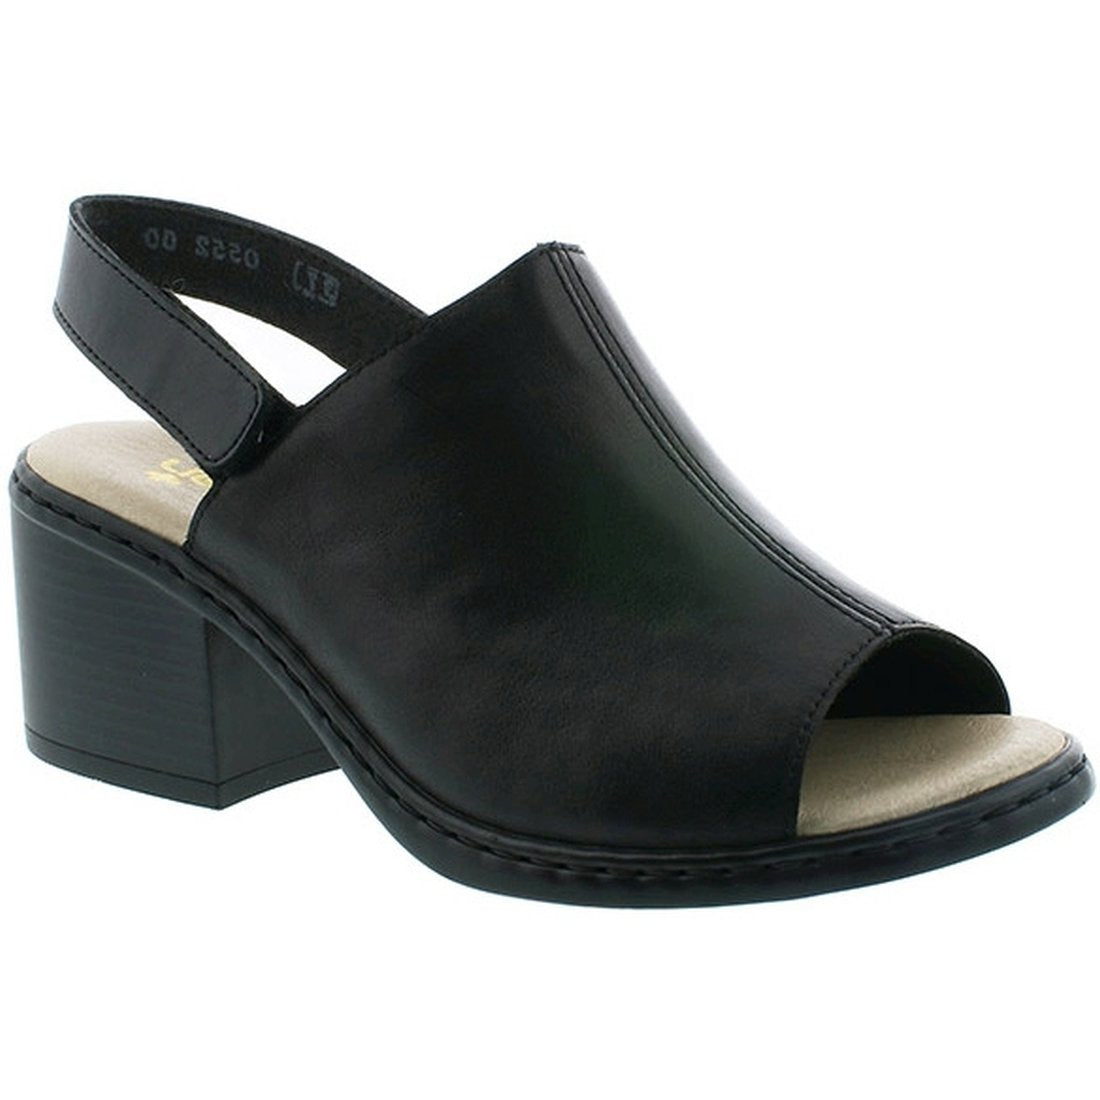 Rieker Womens Schwarz Black Sandals V0552-00 | Vilbury London